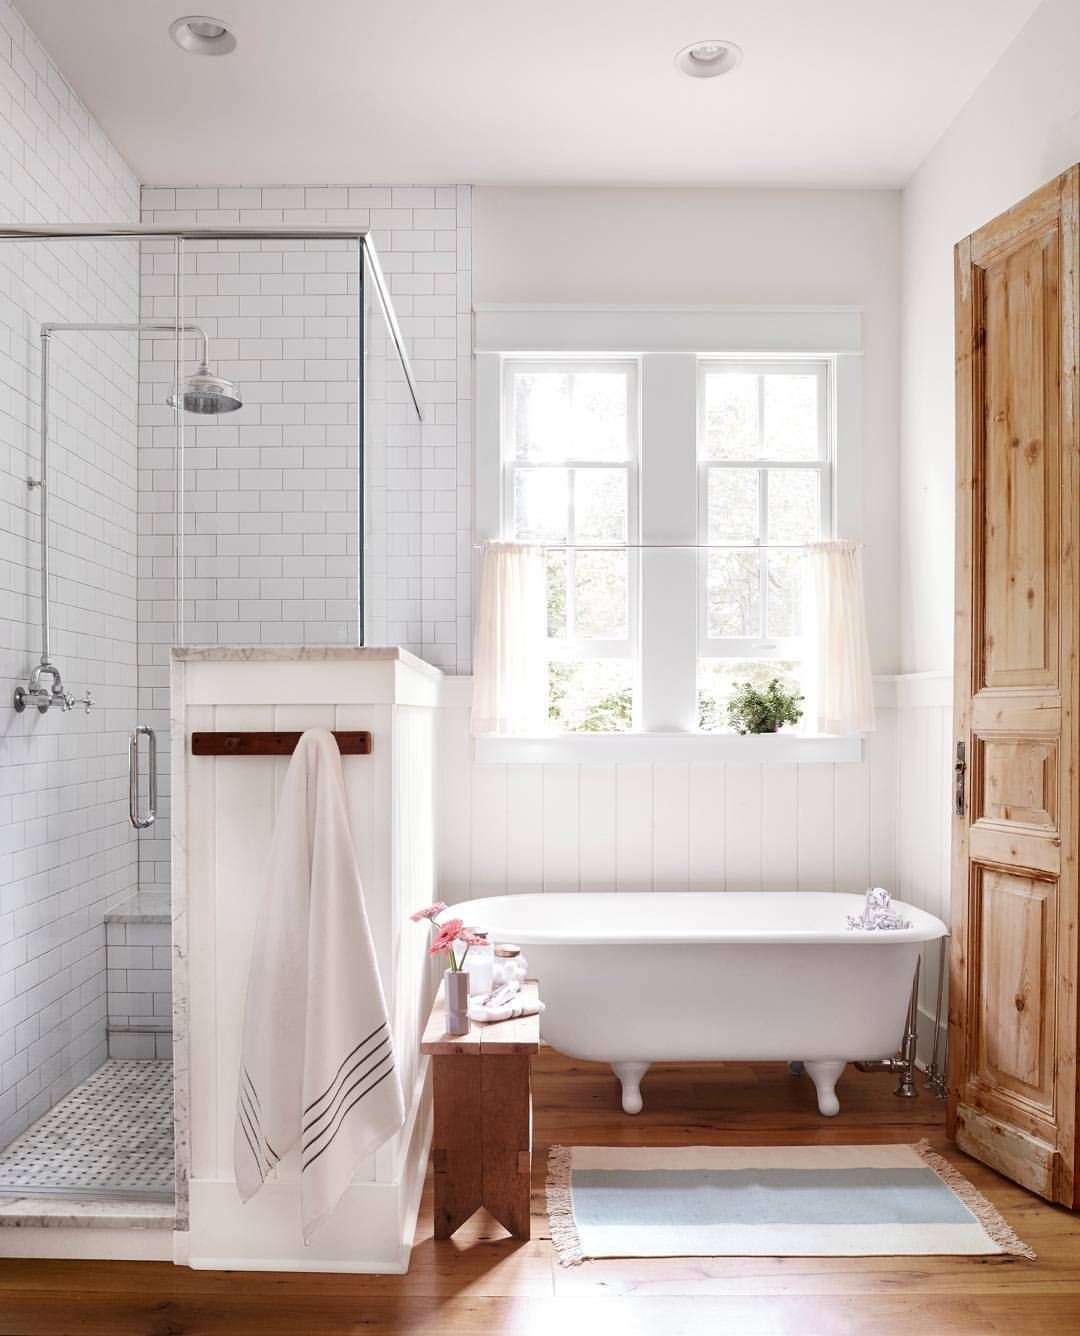 Charming Can I Paint My Bathtub Tiny Bathroom Refinishing Service Shaped Reglazing A Bathtub Bathtub Glazing Old Resurfacing Bathtub Cost BlackBath Tub Plumbing Soak In The Suds AND The Sunshine In This Refurbished 1930s Claw ..